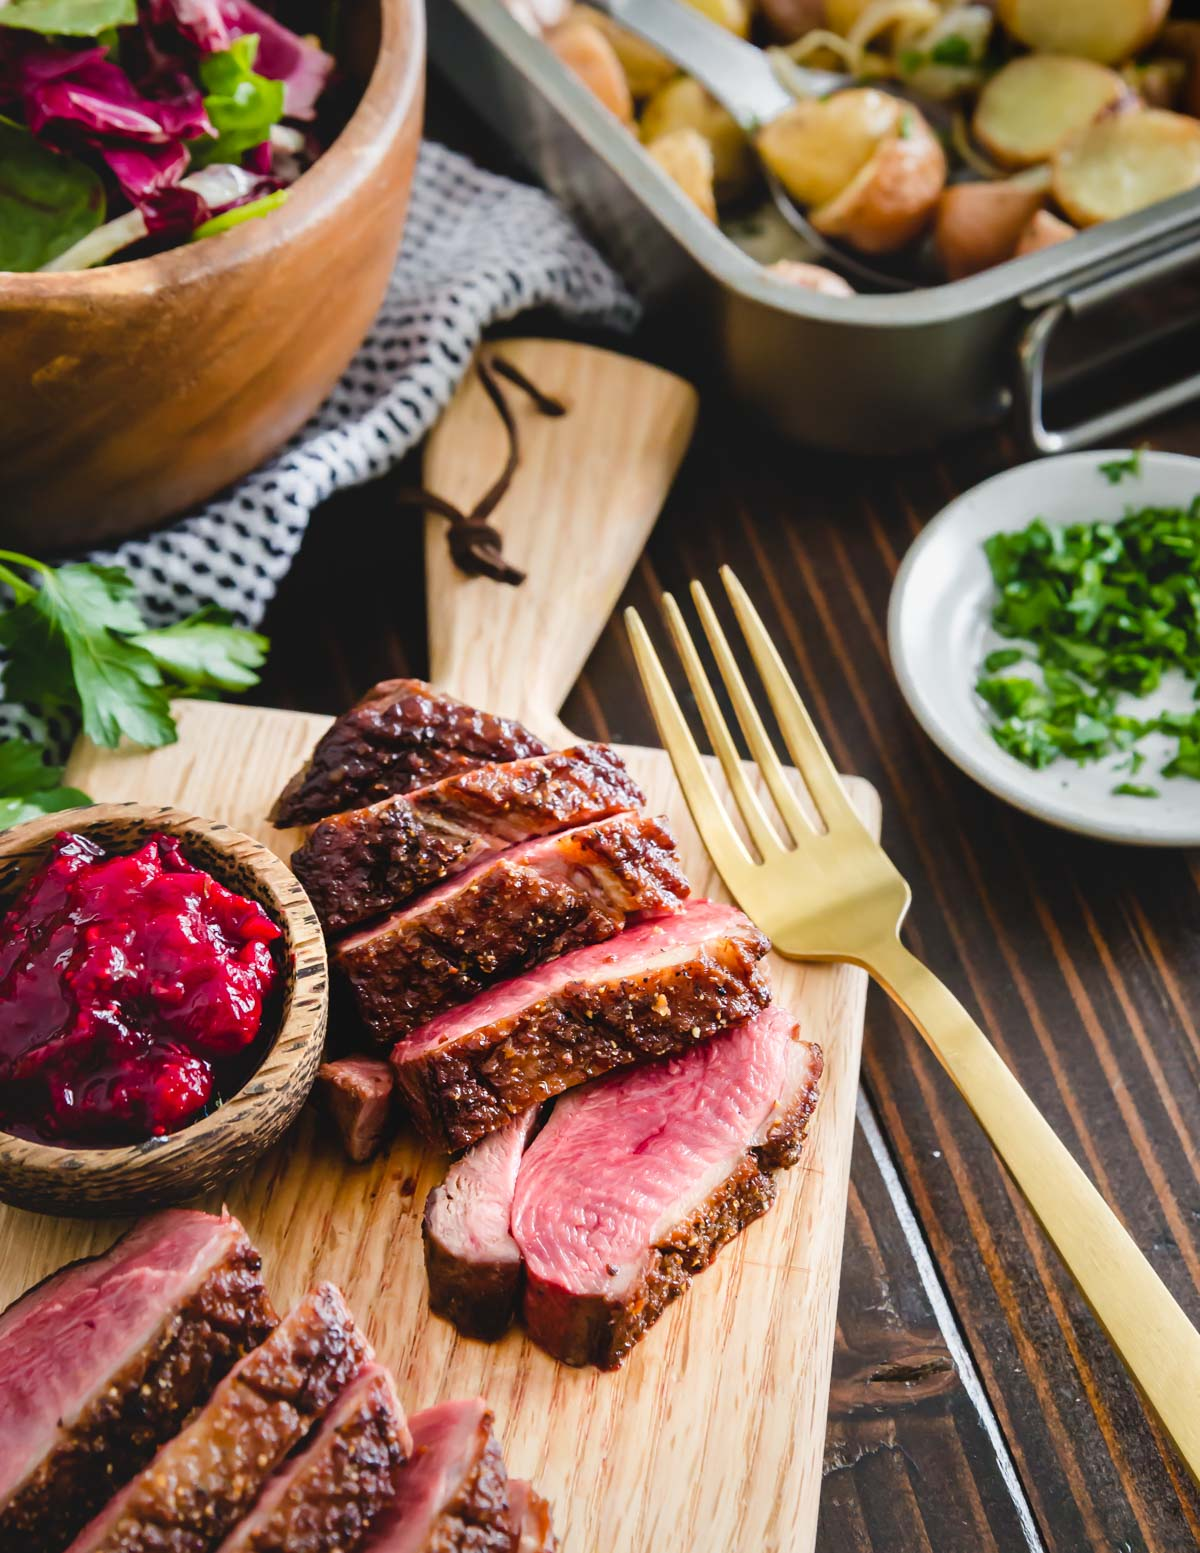 This duck breast recipe utilizes a quick pan sear for a crispy exterior skin and beautiful medium-rare interior.